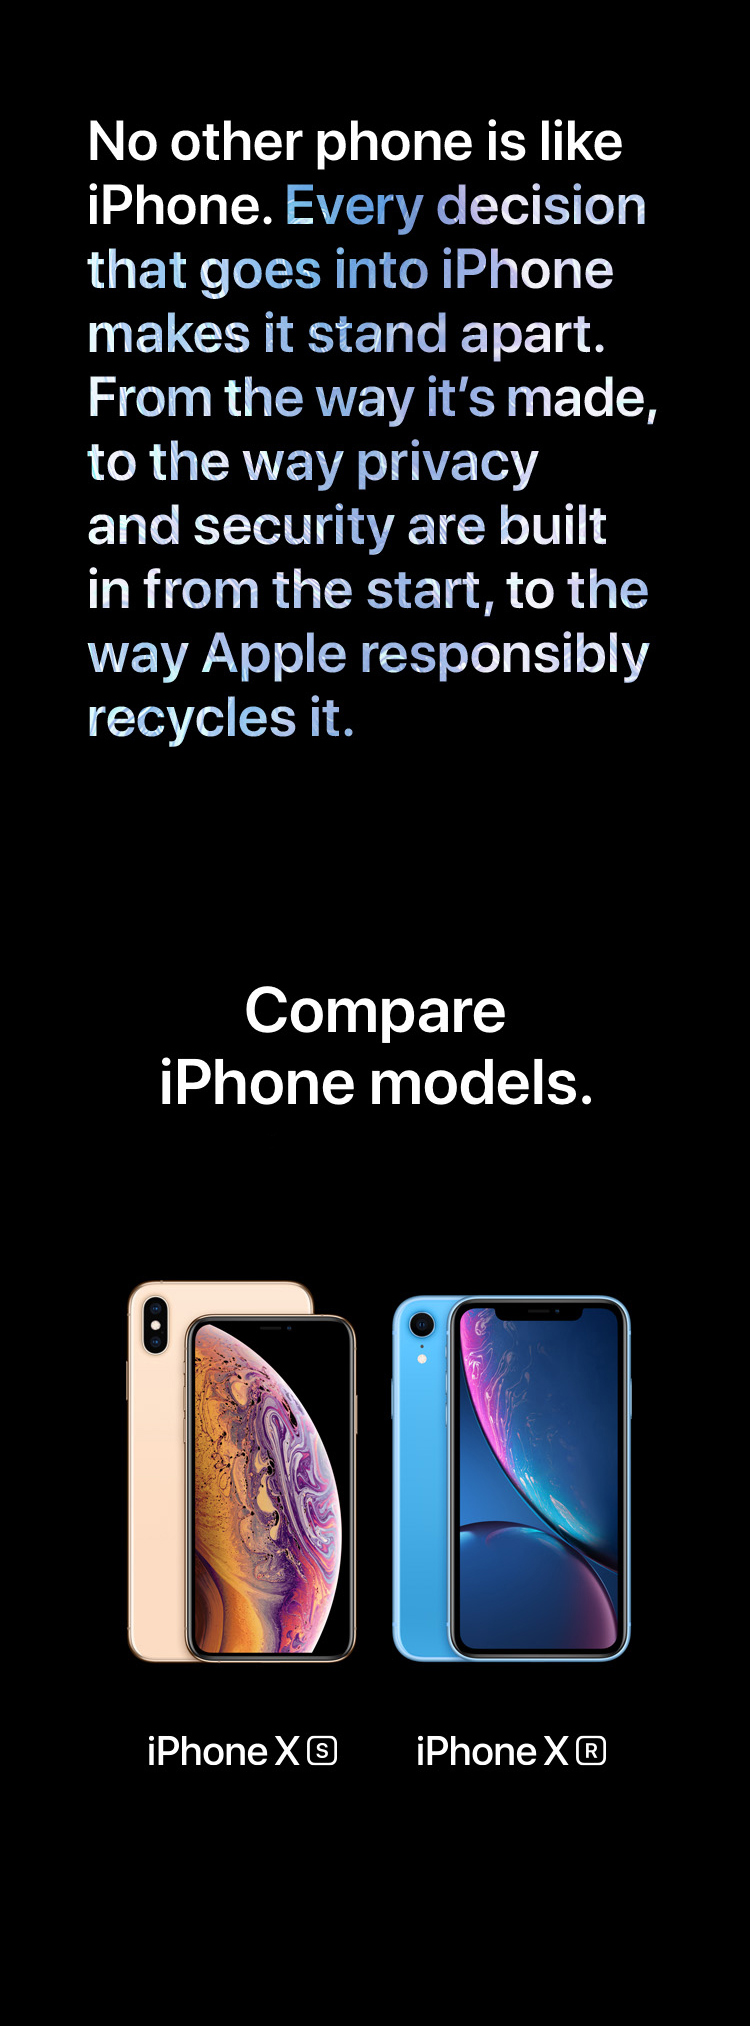 And this. iPhone XR delivers Gigabit-class LTE for superfast download speeds. And up to 512GB of storage, making this Apple's highest-capacity iPhone yet. The 5 Seconds of Summer Want You Back music video is available on iTunes.